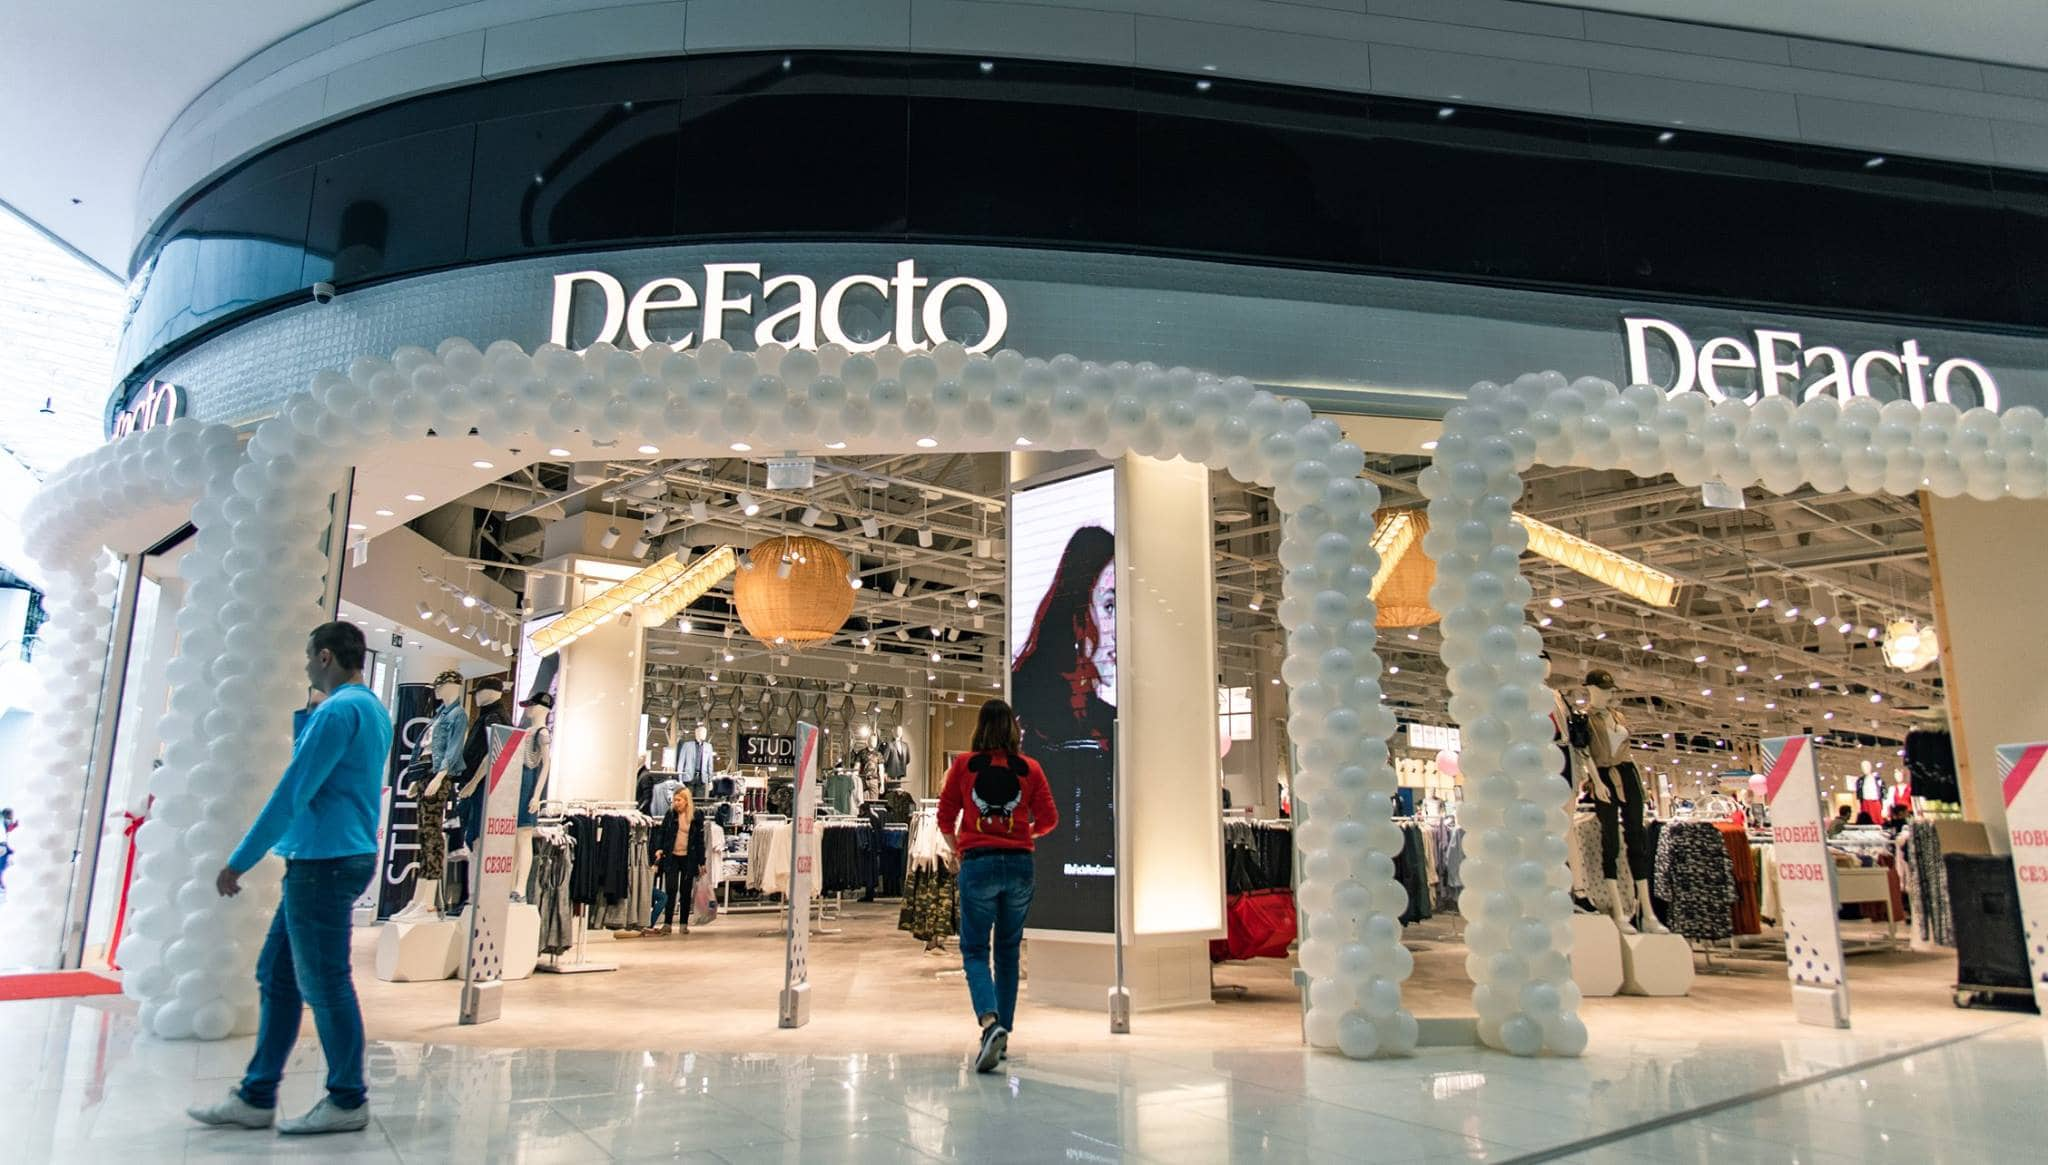 Today is De Facto's opening in Blockbuster Mall!